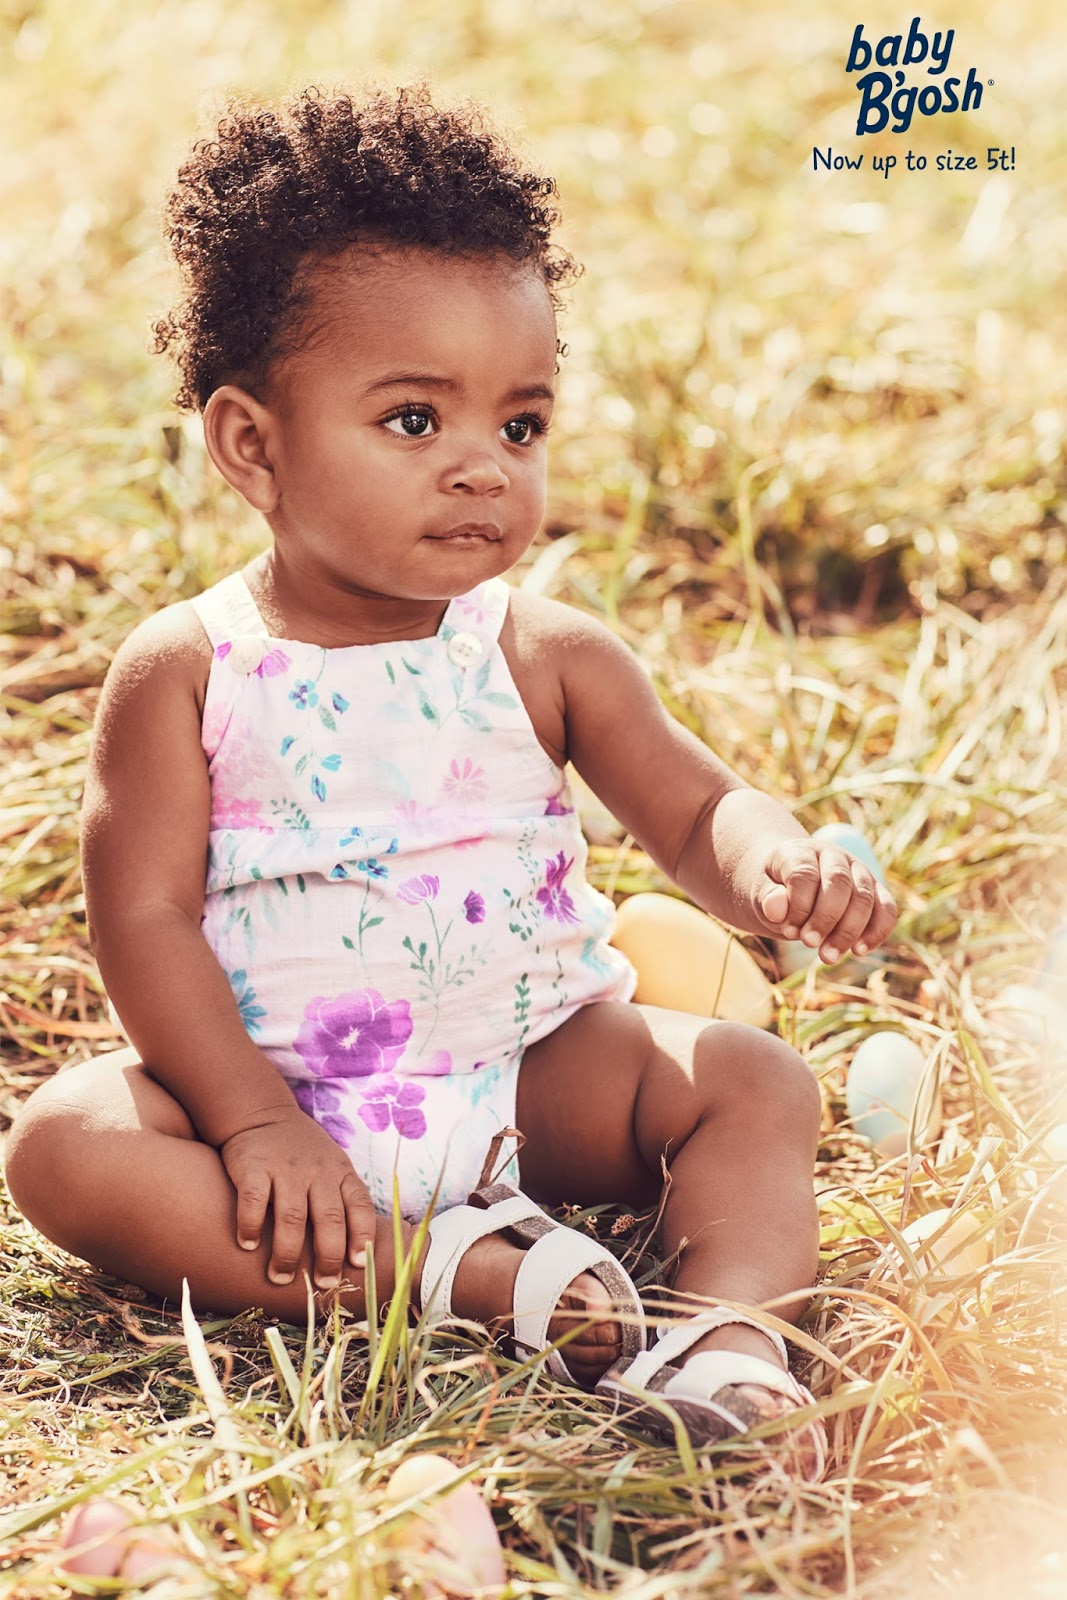 OshKosh B'Gosh has their new spring line in stores & it's just amazing! Be sure to enter the OshKosh B'Gosh Giveaway & you may be able to go spring shopping